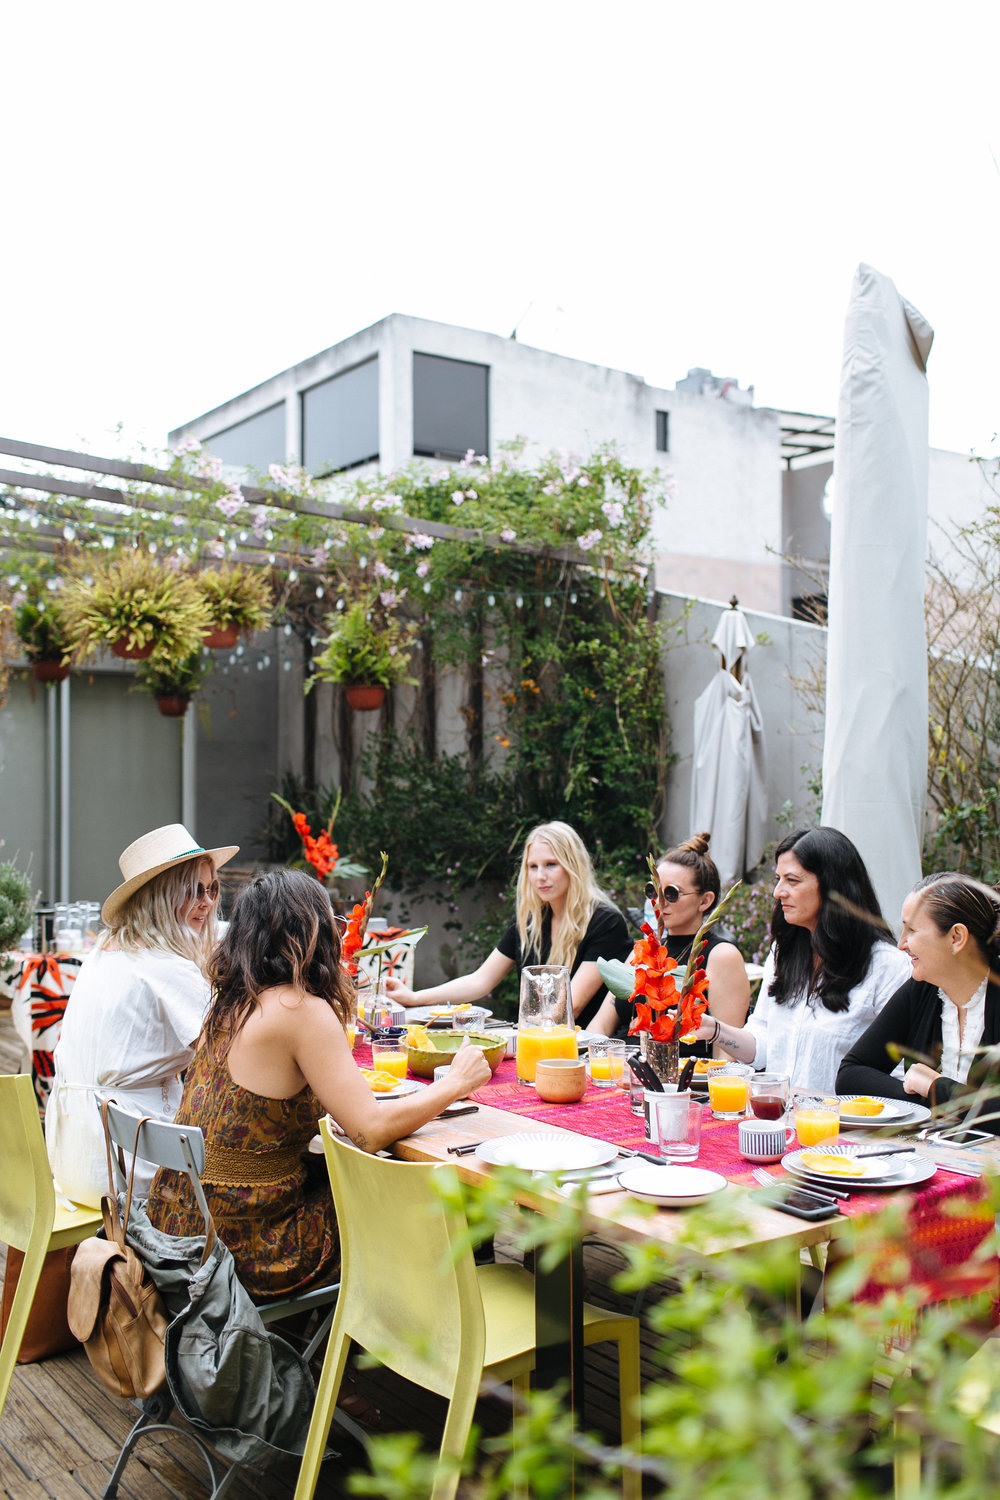 Copy of Five women eating Mexican Food on the rooftop.